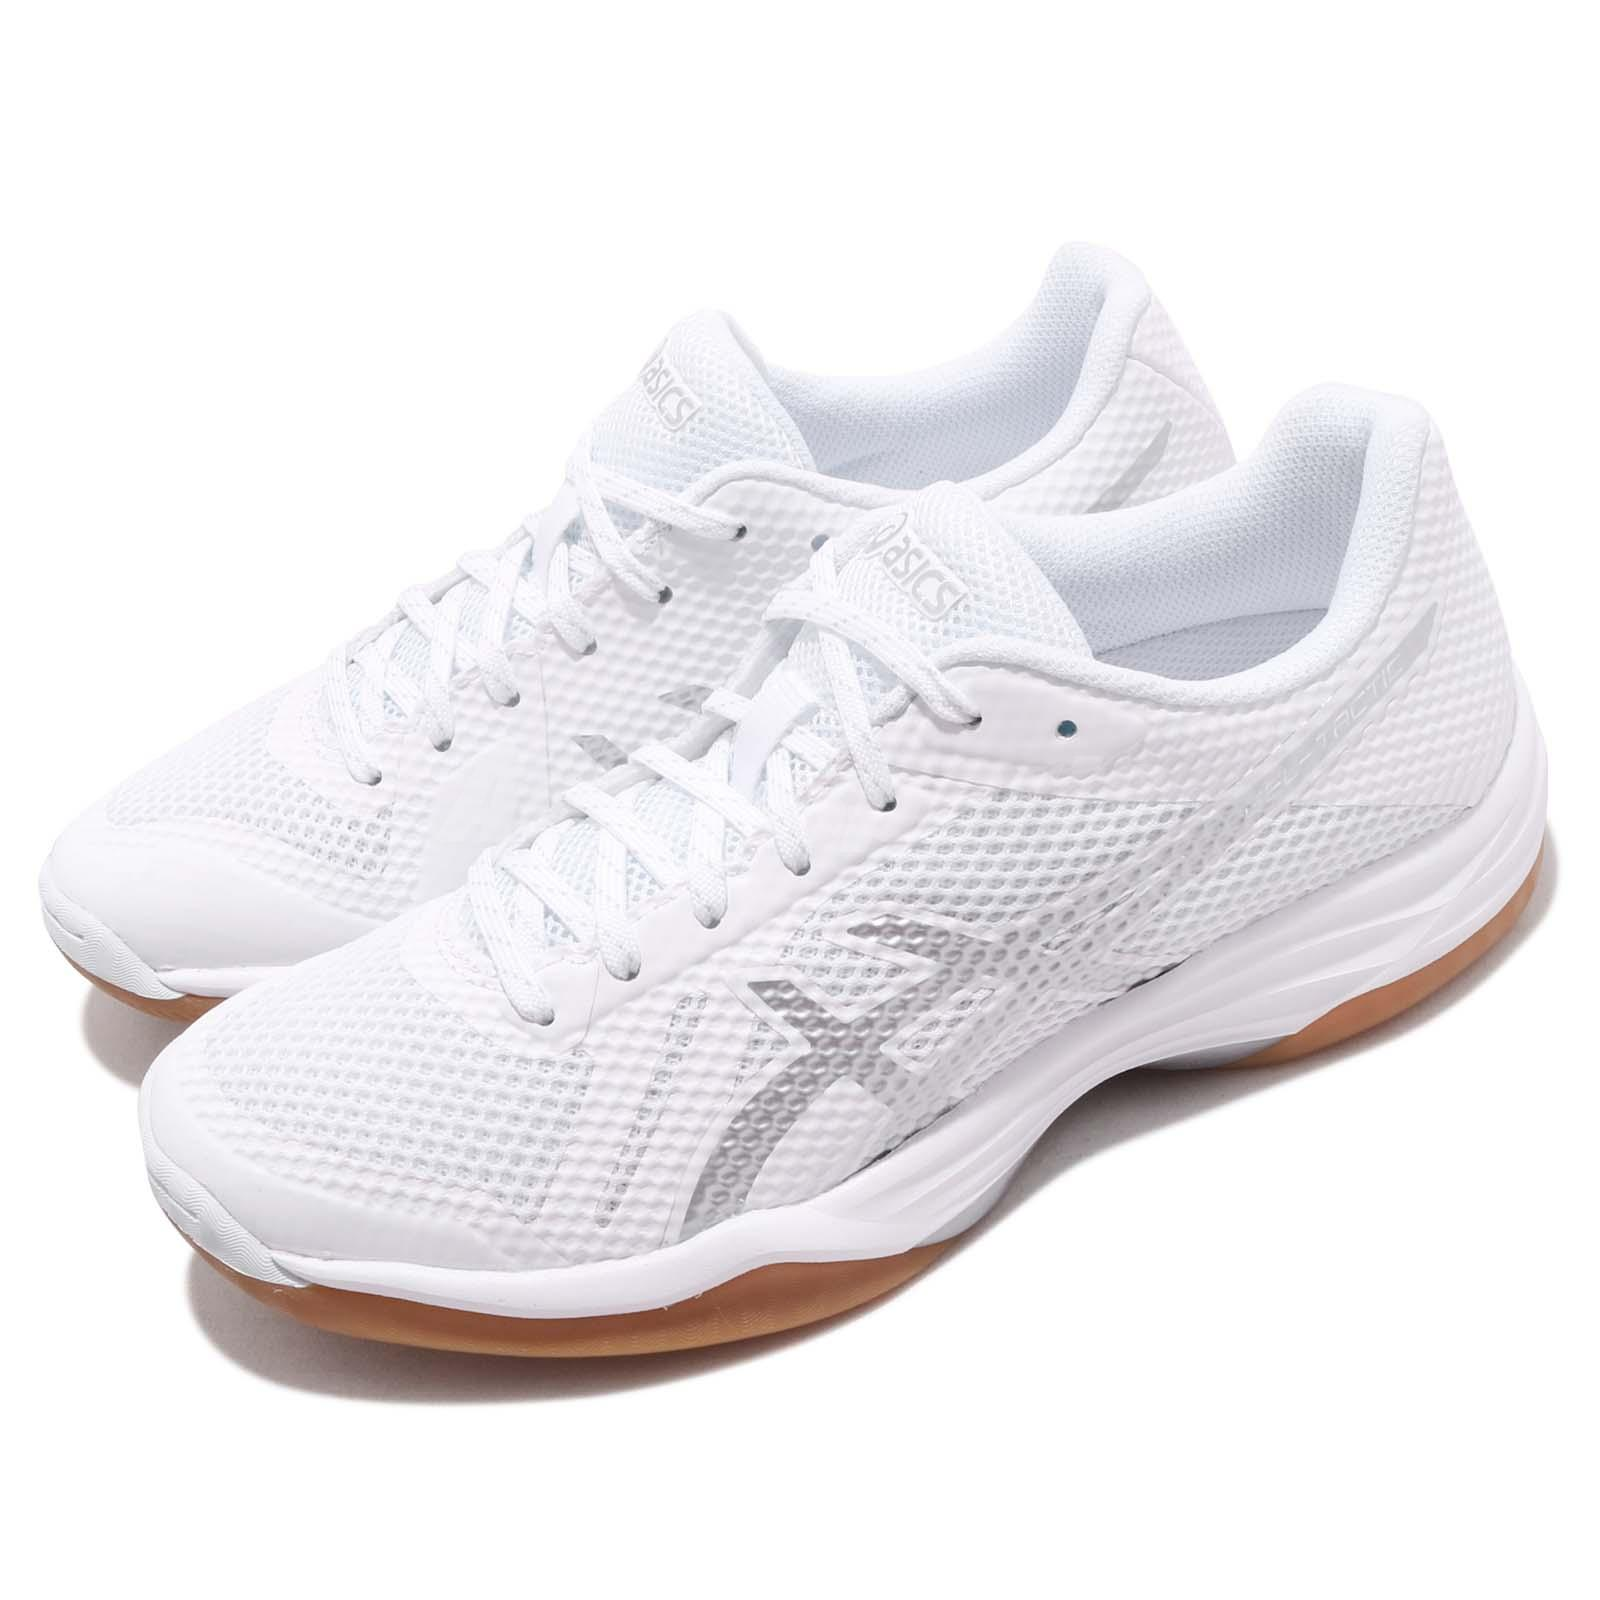 46cf5c47b004 Details about Asics Gel Tactic White Silver Gum Women Volleyball Badminton  Shoes 1052A017-144